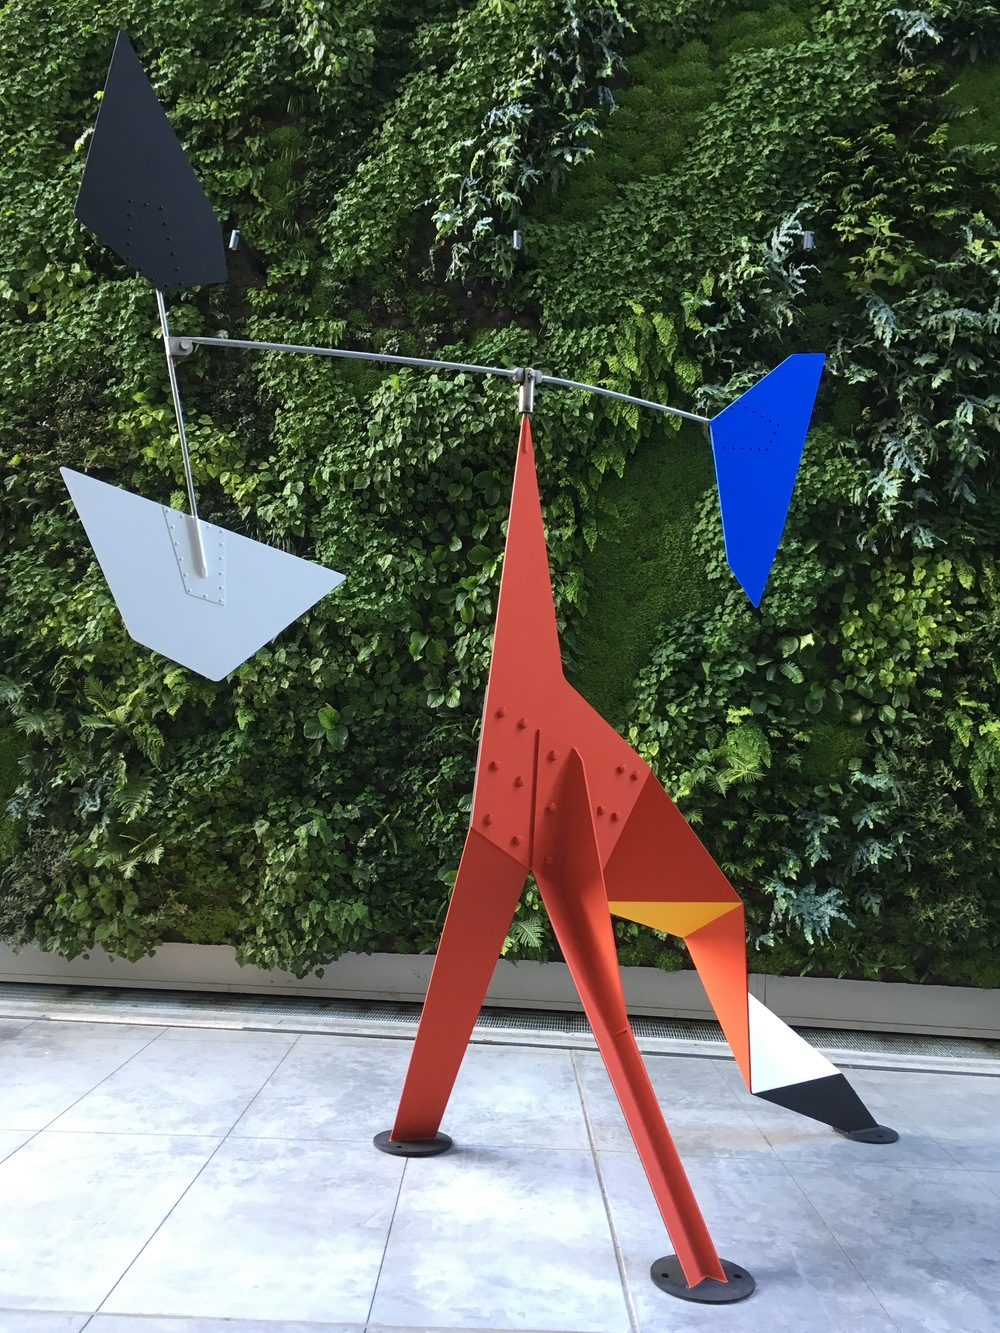 A whimsical Alexander Calder sculpture on the third floor patio, where I went to get some fresh air and continue my sculpture exploration.